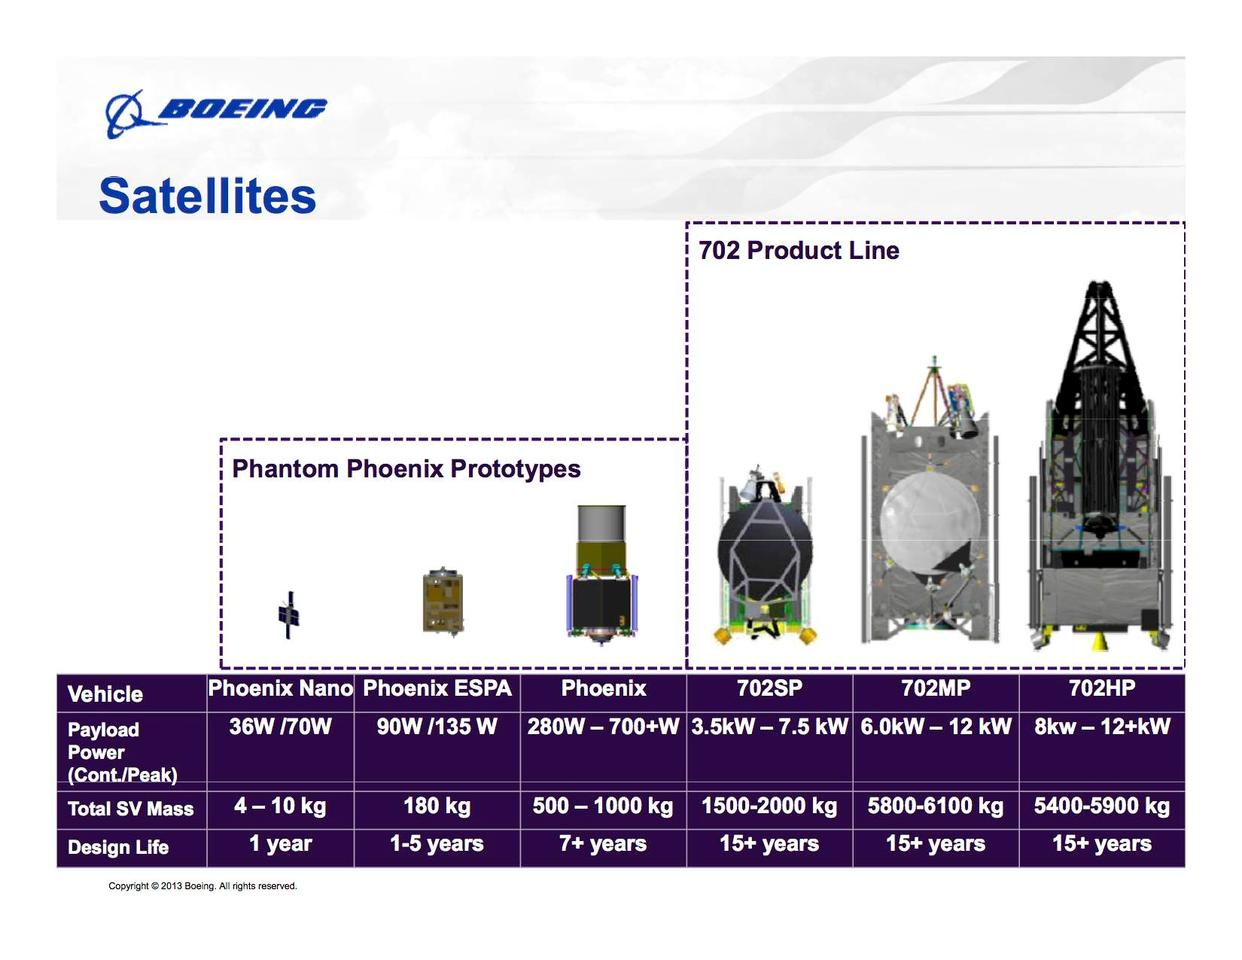 Boeing announces Phantom Phoenix family of small satellites